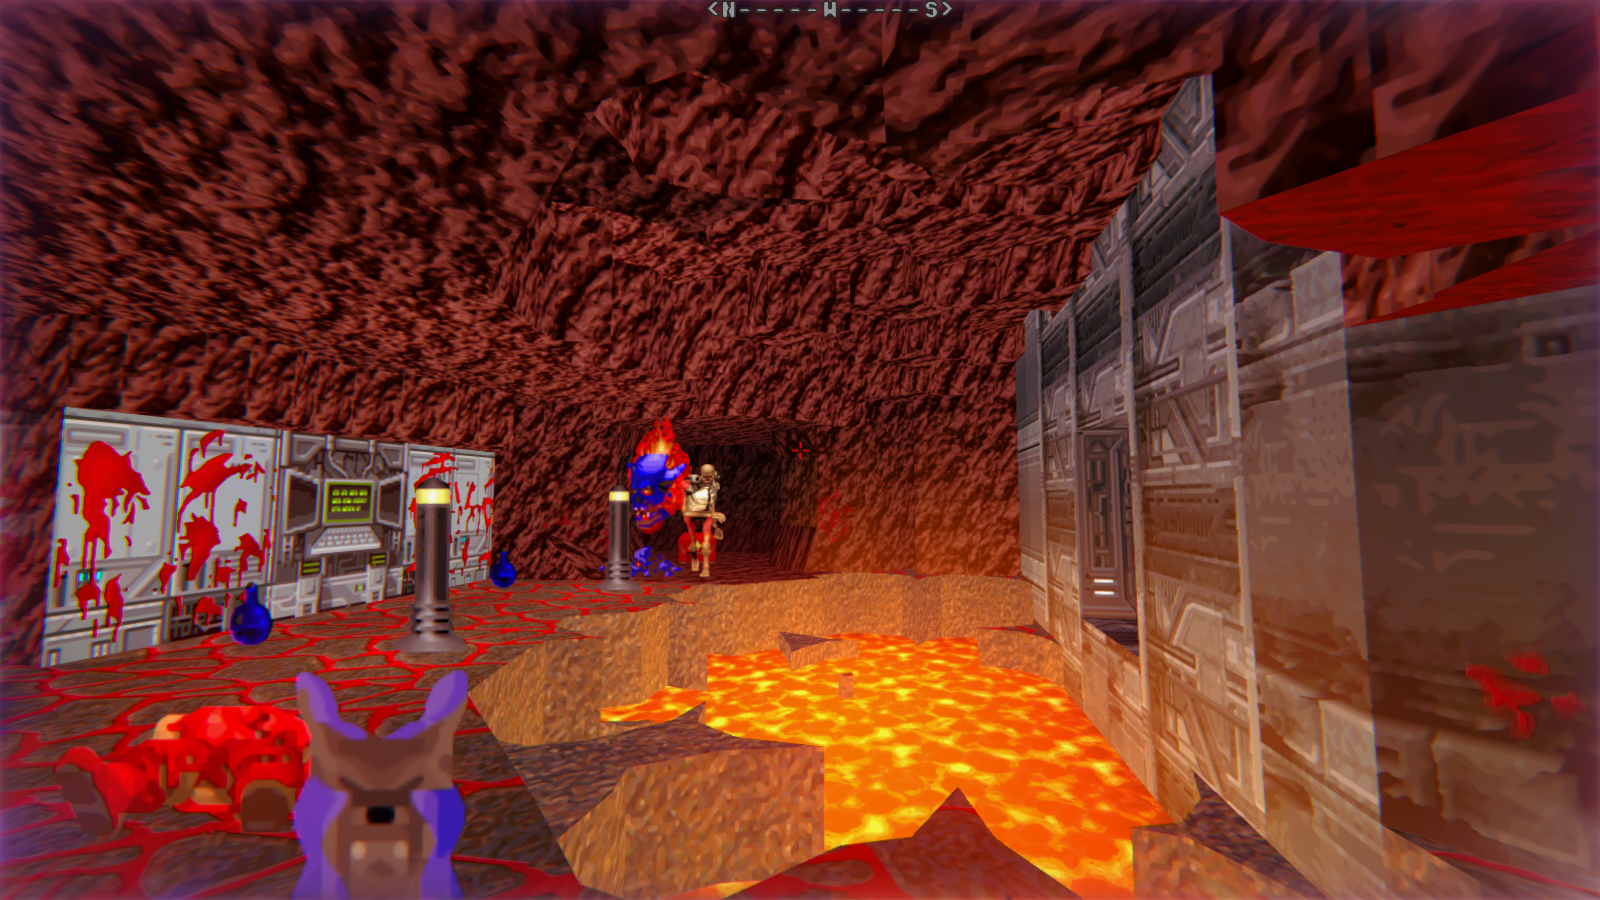 DRRP Doom RPG Remake Project REAC Reactor Demon Wolf Revenant Nightmare Caves Lava Lakes Screenshot